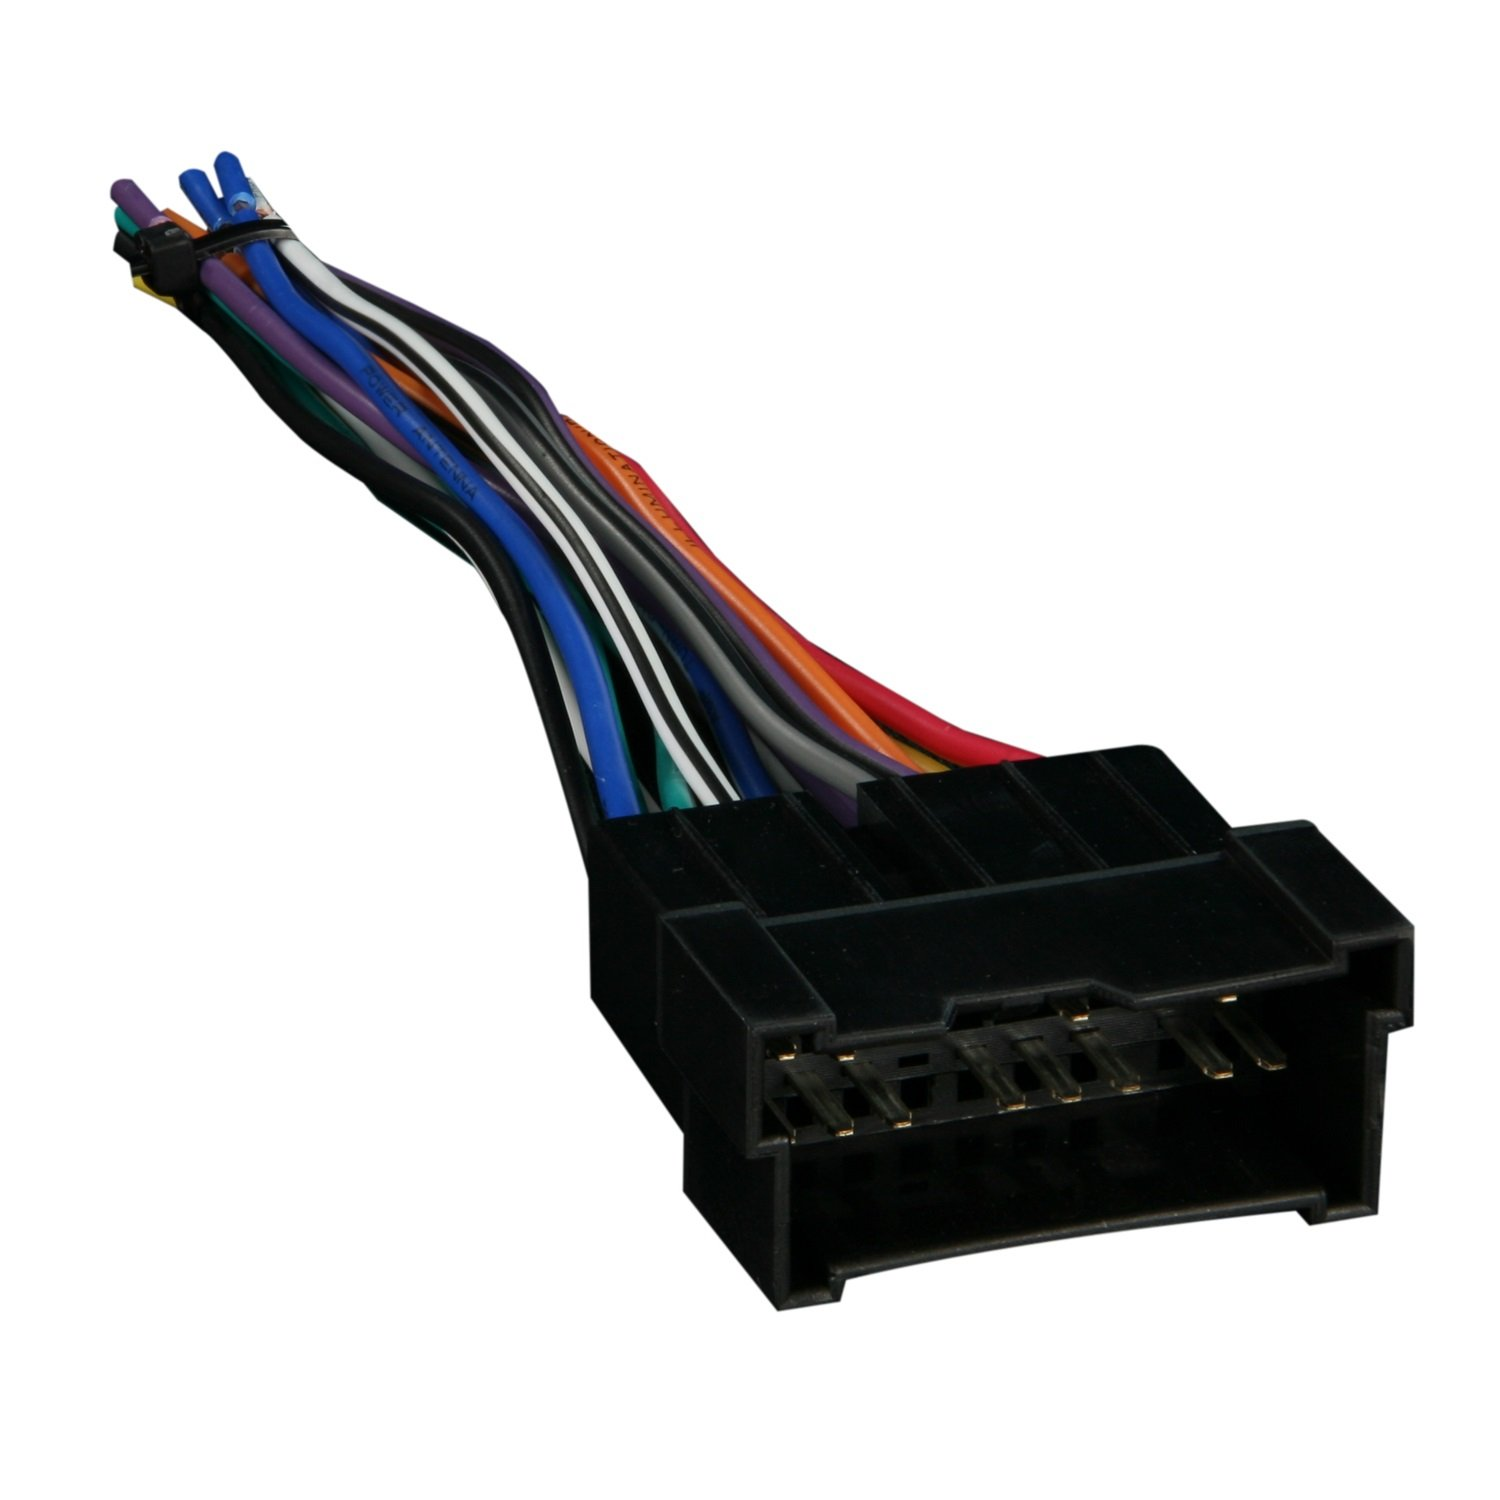 617yeBmOquL._SL1500_ amazon com metra 70 7301 radio wiring harness for hyundai kia 99 wire harness doesn't fit at bakdesigns.co